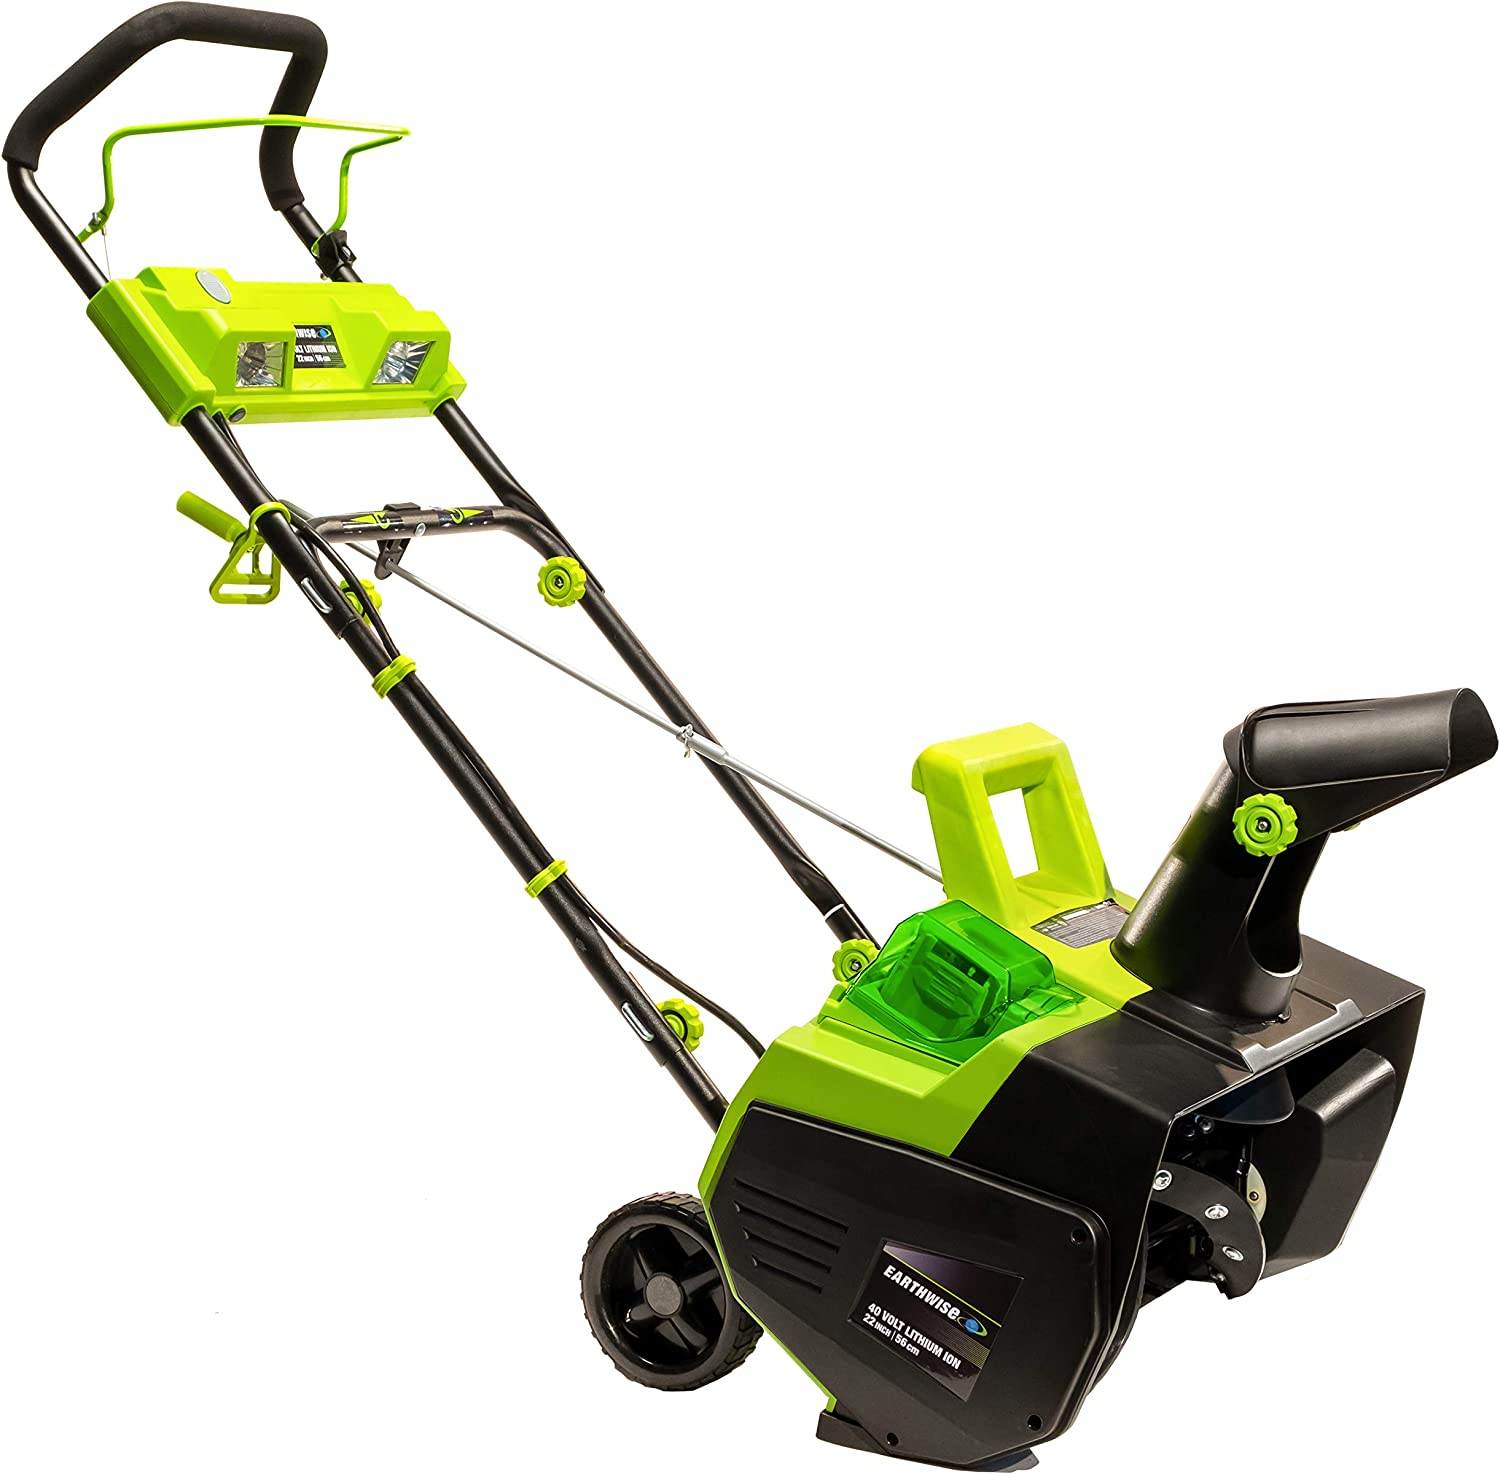 Earthwise SN74022 22-Inch 40-Volt Cordless